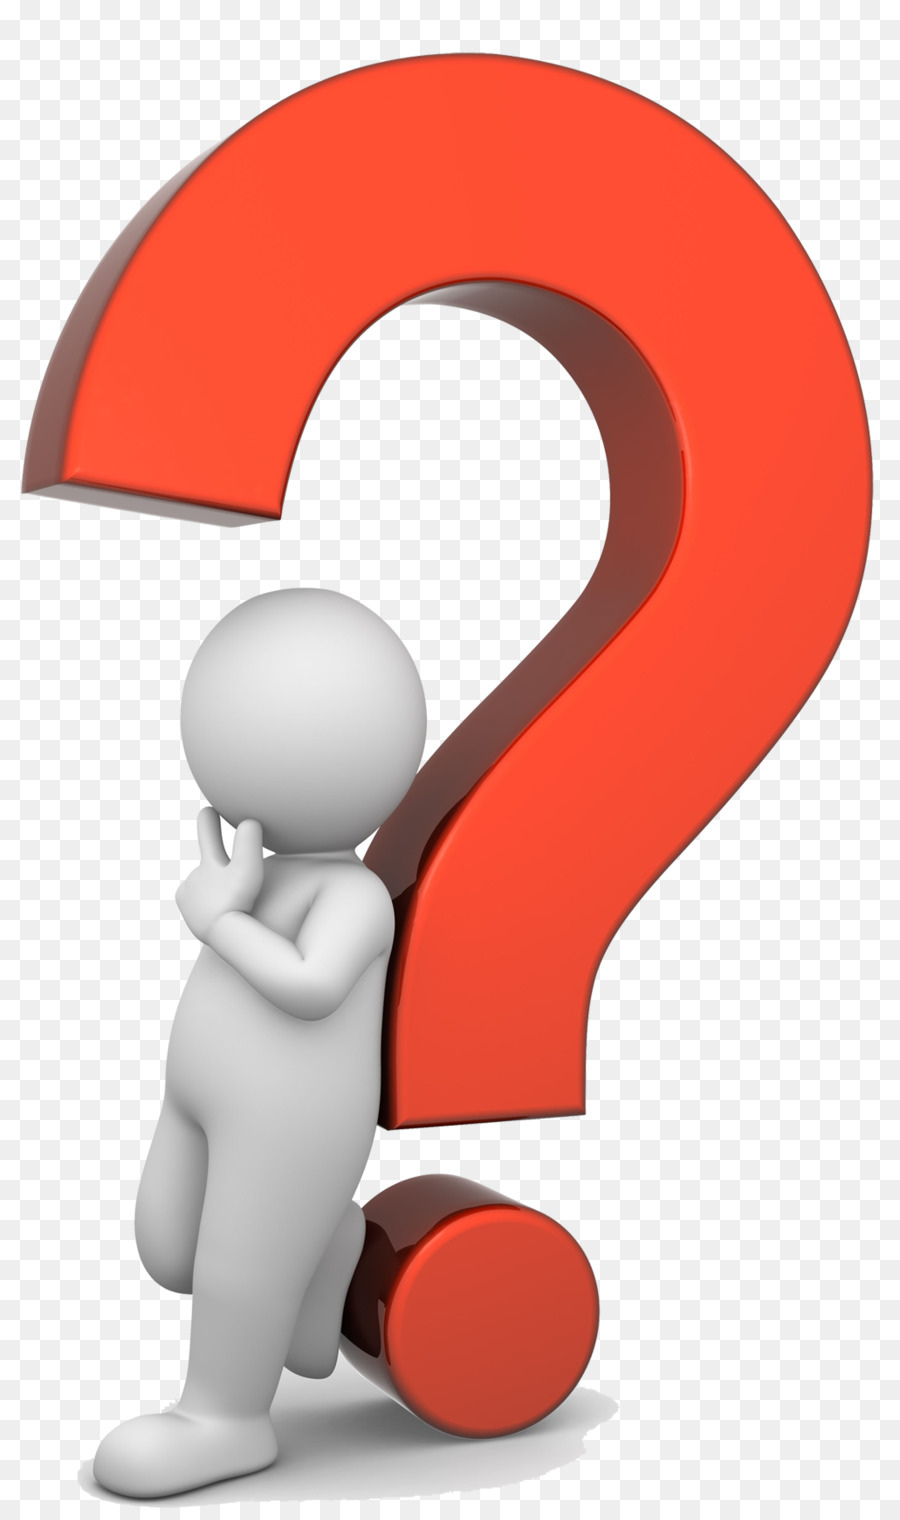 free animated png question marks free animated question marks png transparent images 4088 pngio free animated png question marks free